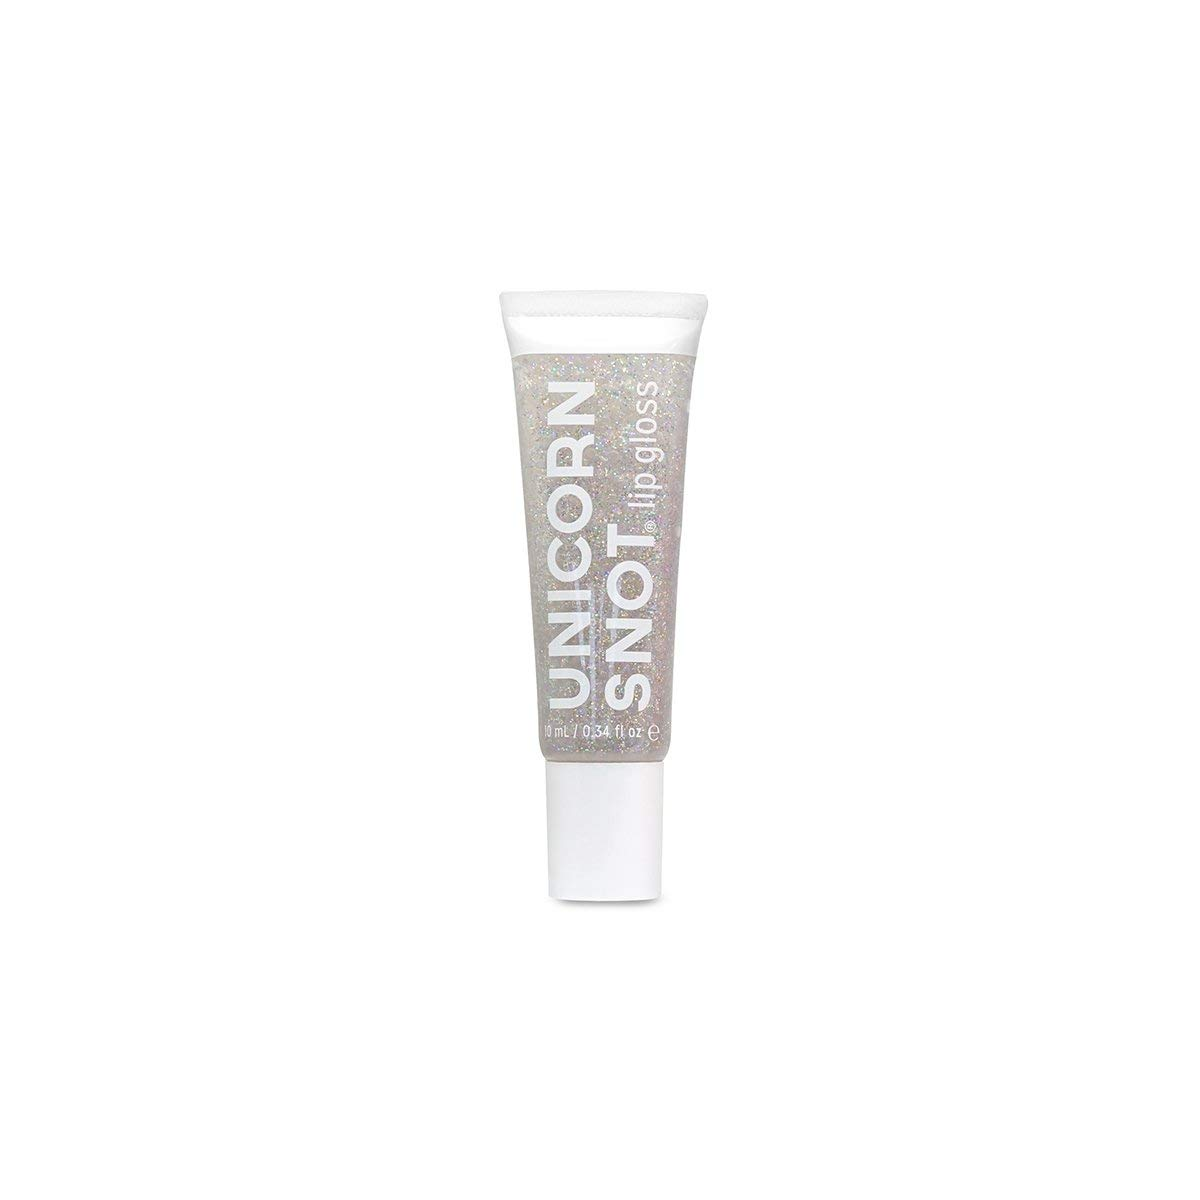 Unicorn Snot Holographic Glitter Lip Gloss, Vegan and Cruelty Free, Silver, 0.34 Fluid Ounce